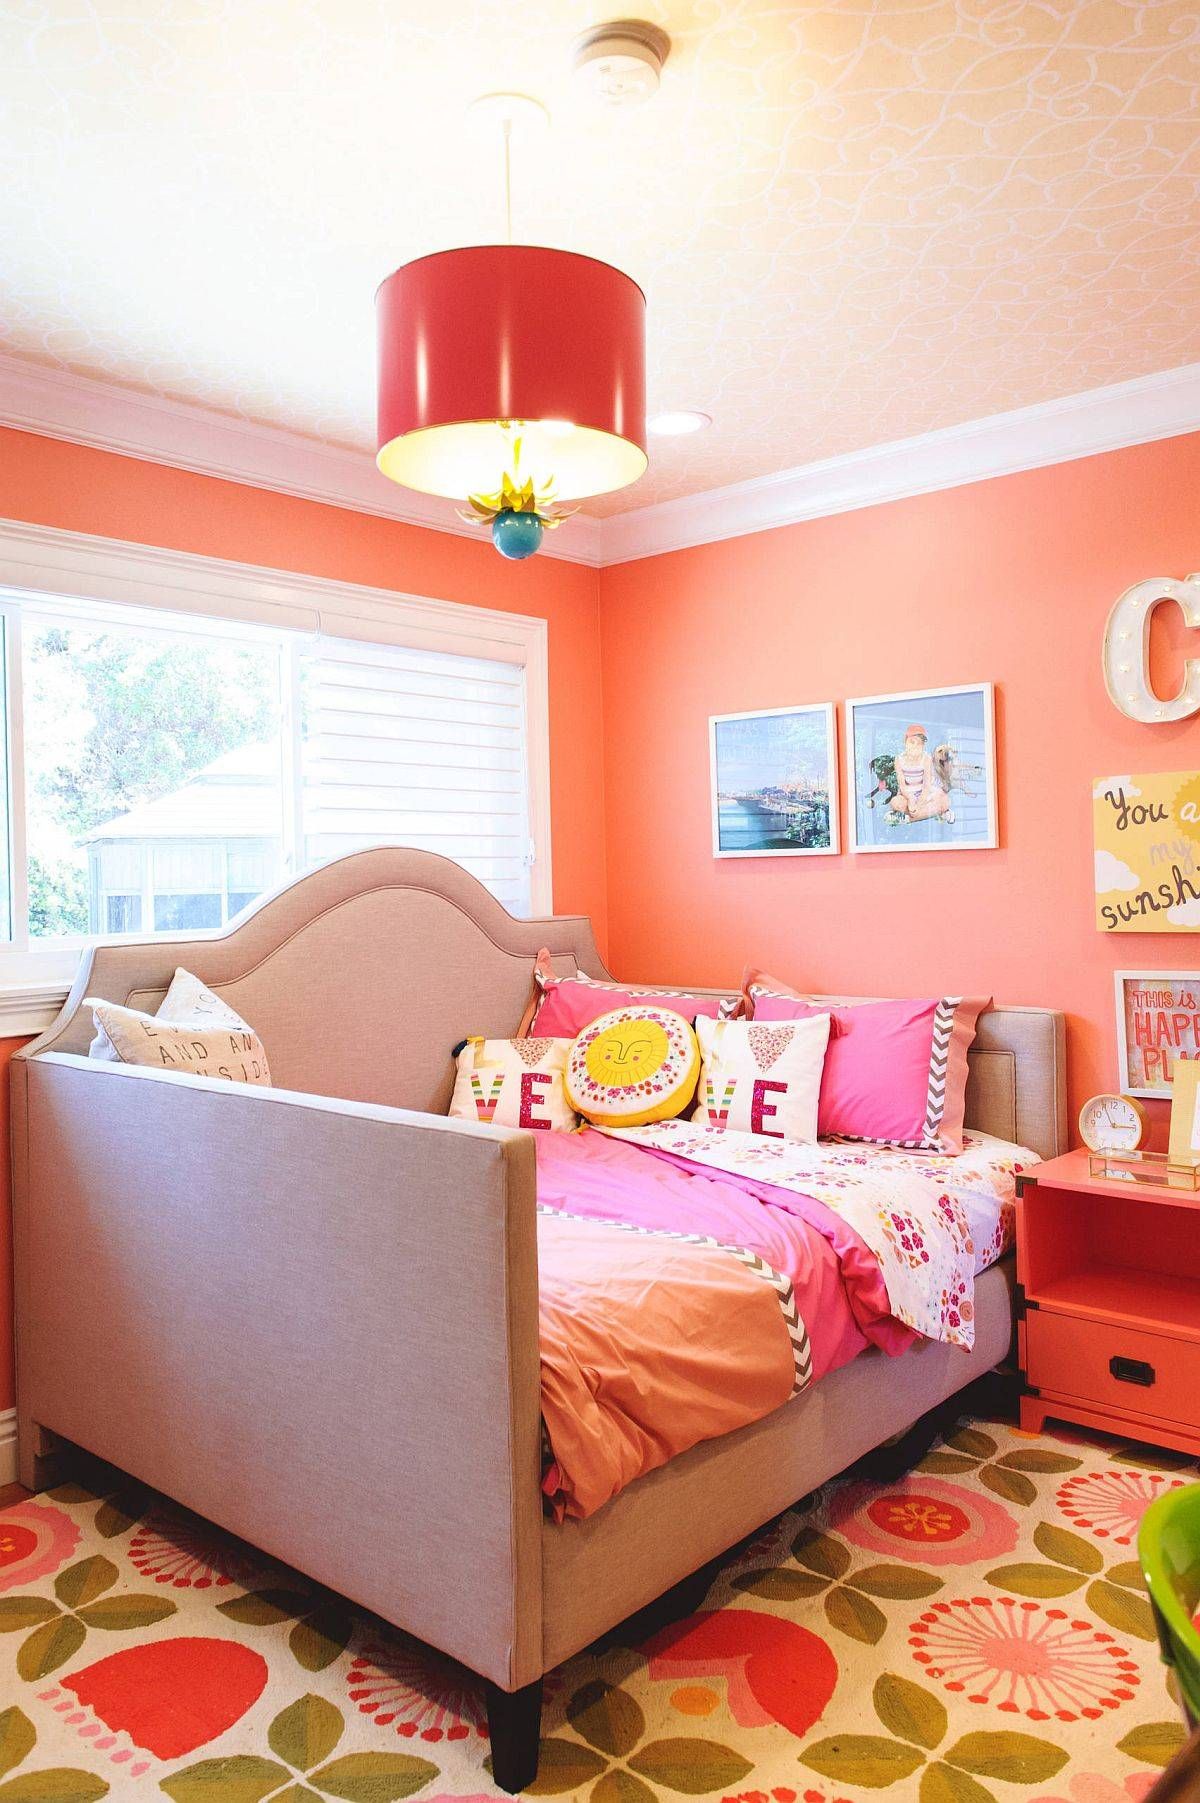 Charming-orange-backdrop-in-the-kids-bedroom-with-wallpapered-ceiling-and-smart-pendant-light-51599